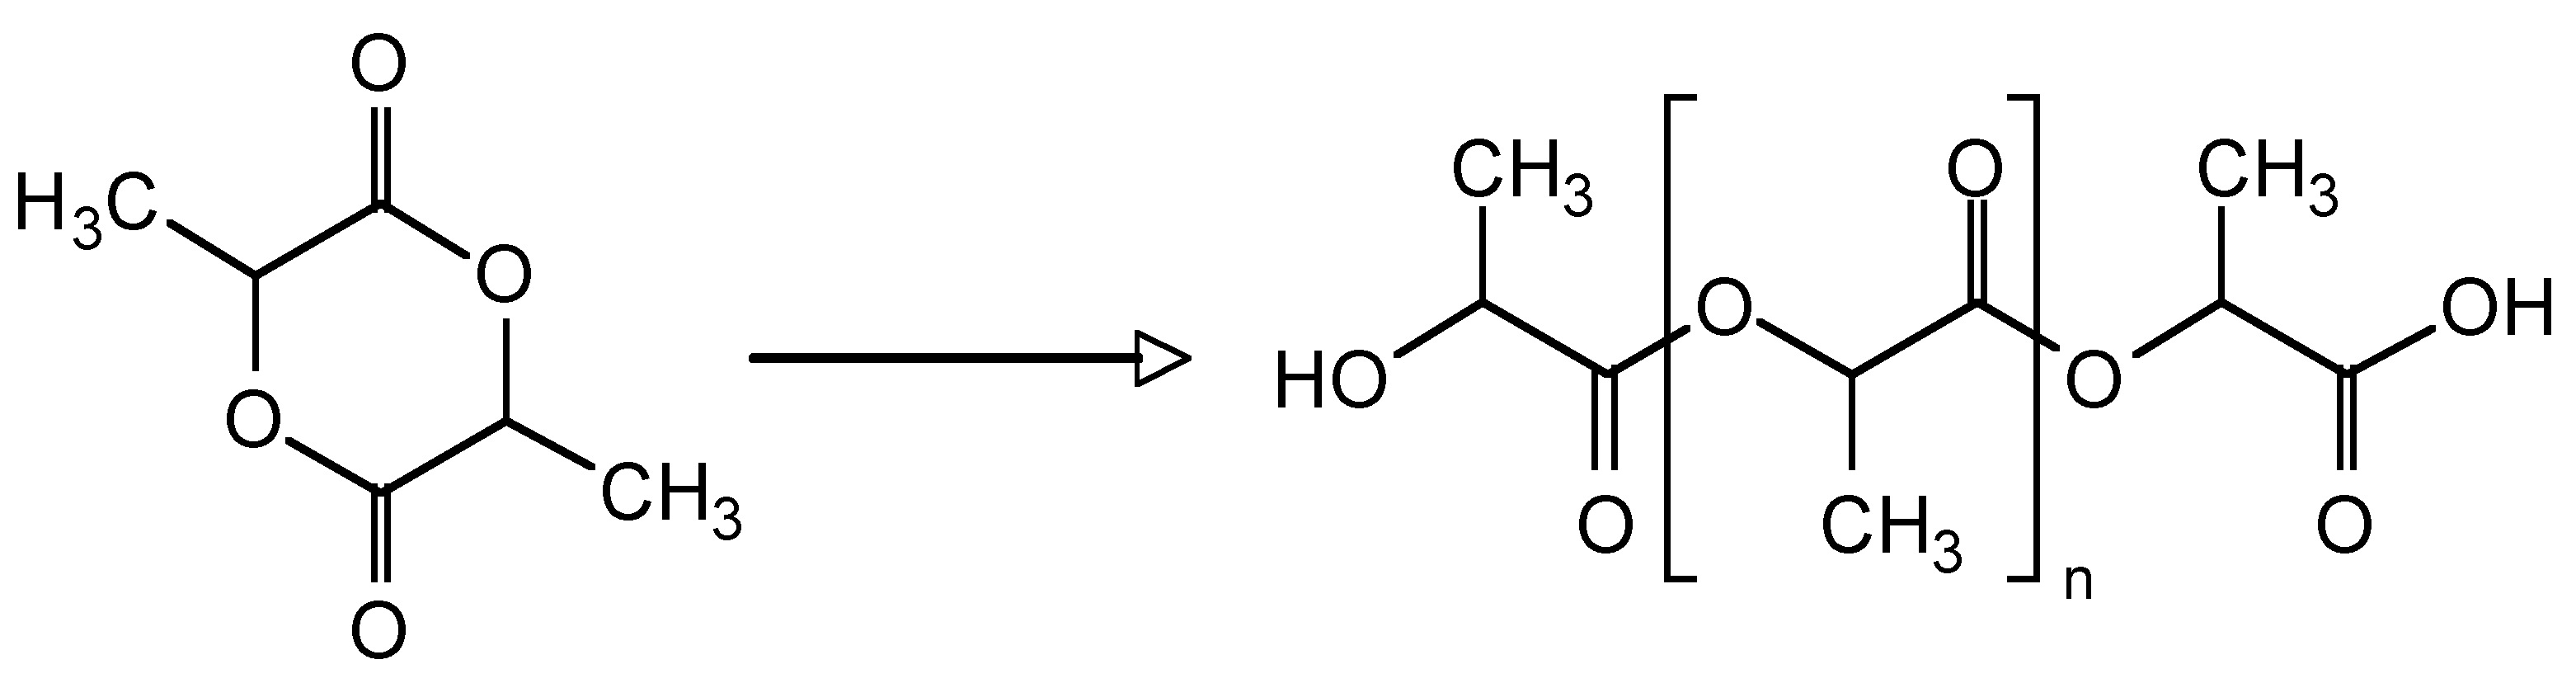 The ring-opening polymerization of lactide to polylactide